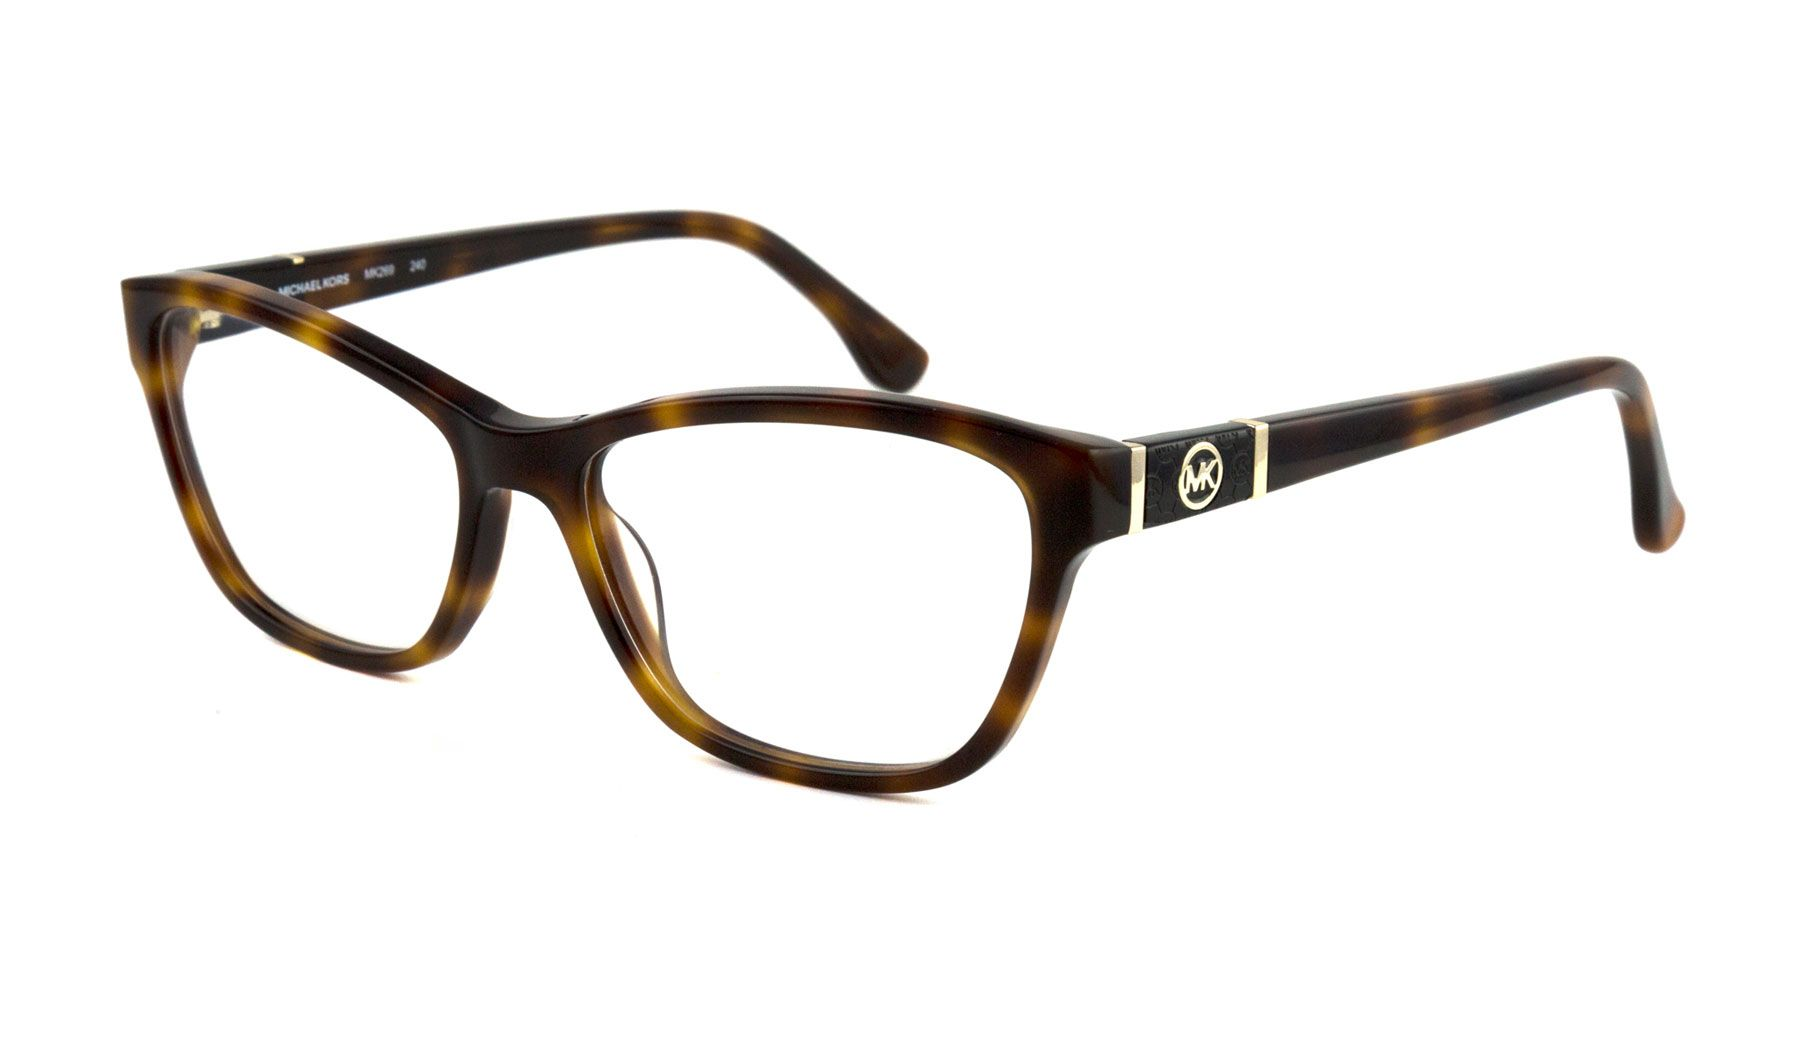 michael kors tortoiseshell glasses - Mk Glasses Frames